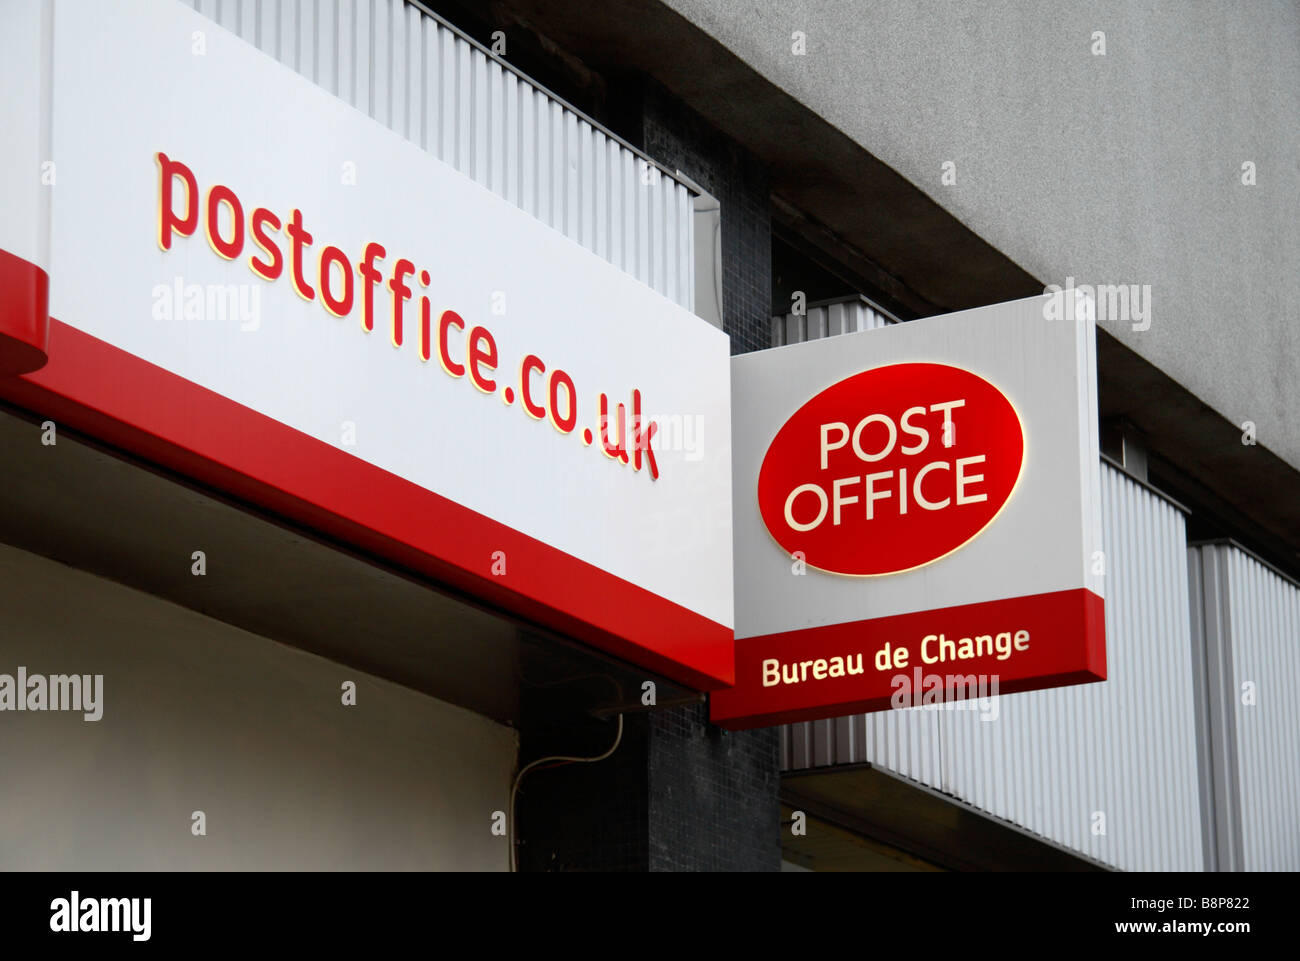 Bureau De Change Old Street royal mail sign logo uk stock photos & royal mail sign logo uk stock